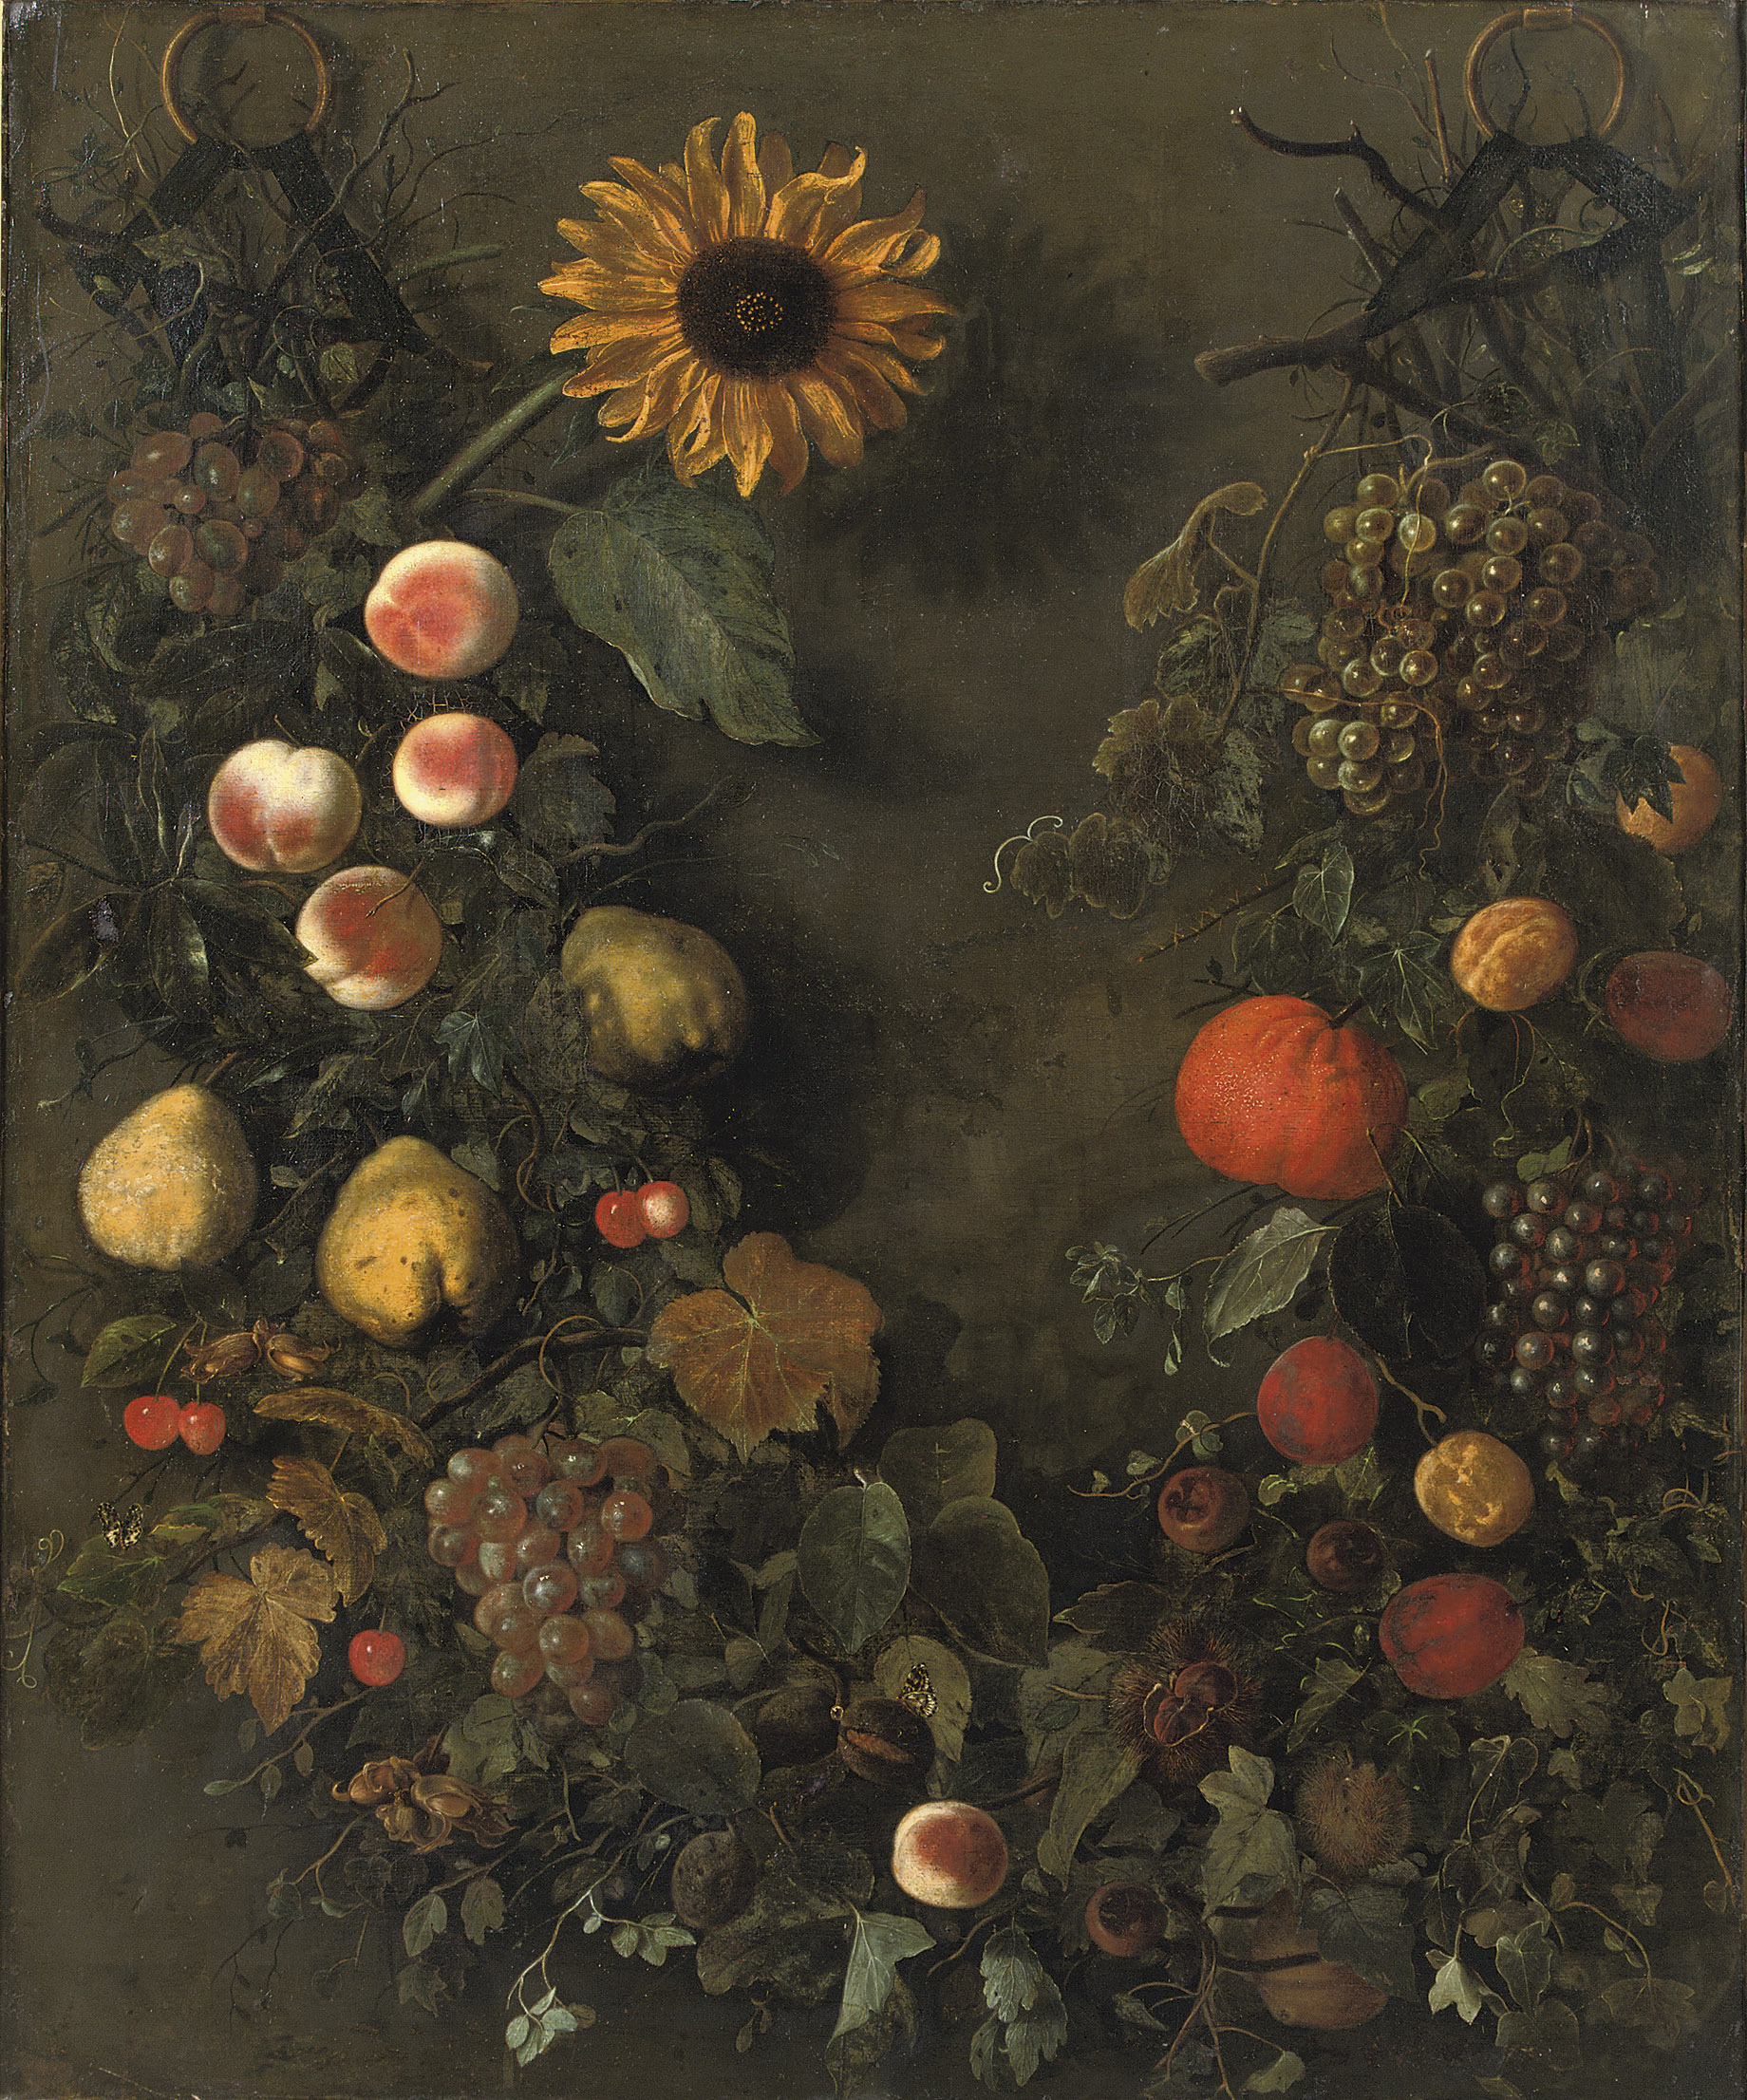 A fruit garland with grapes, peaches, mandarins, cherries, pears and other fruit, with butterflies and a sunflower